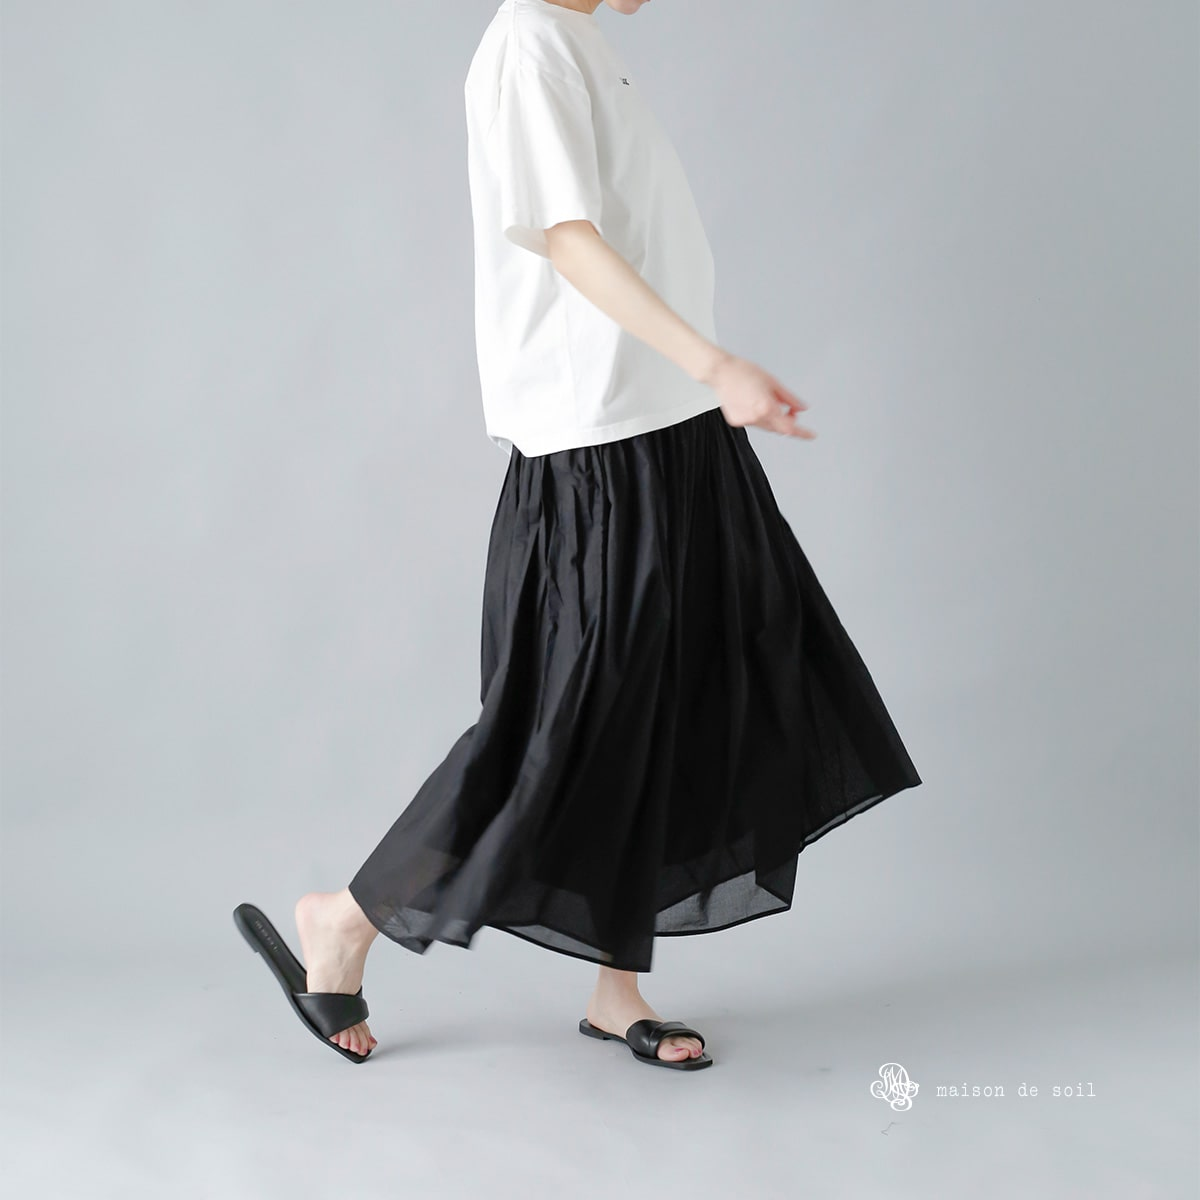 """maison de soil(メゾン ド ソイル)コットンミニピンタックキュロット""""Culottes With Mini Pintuck"""" nmds21206"""